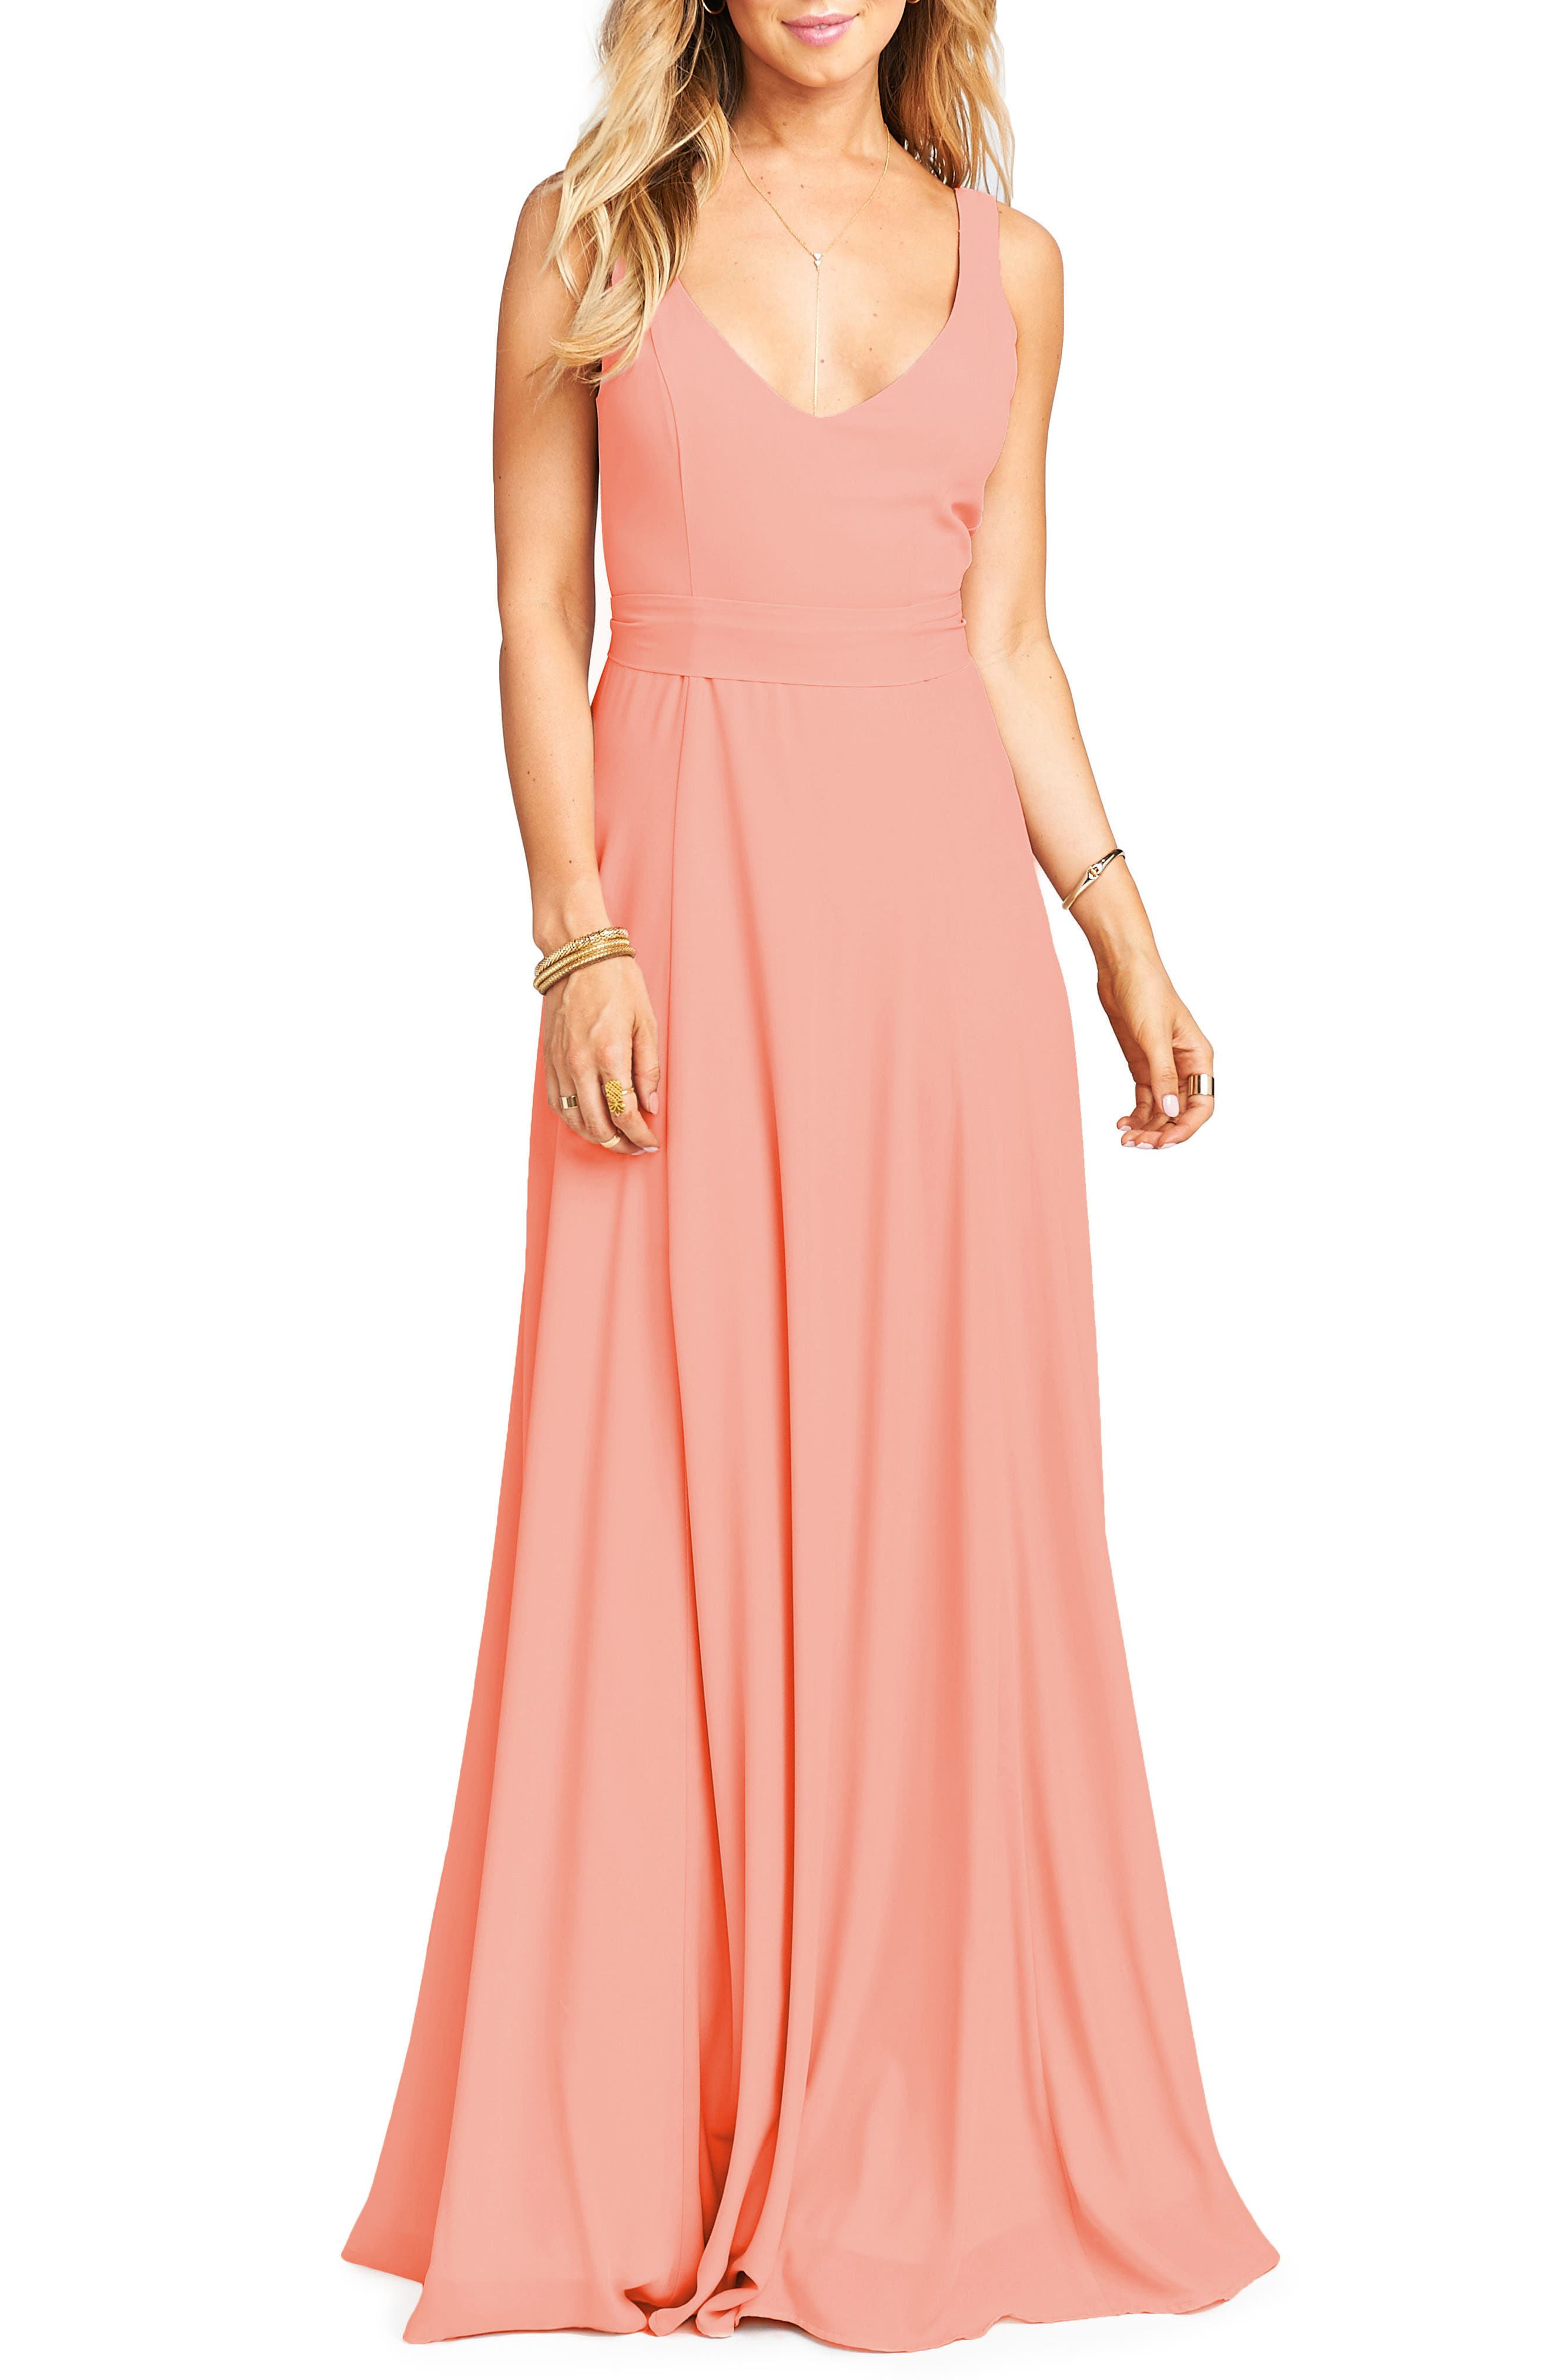 wedding dresses nordstrom women s bridesmaid dresses amp gowns nordstrom 9379